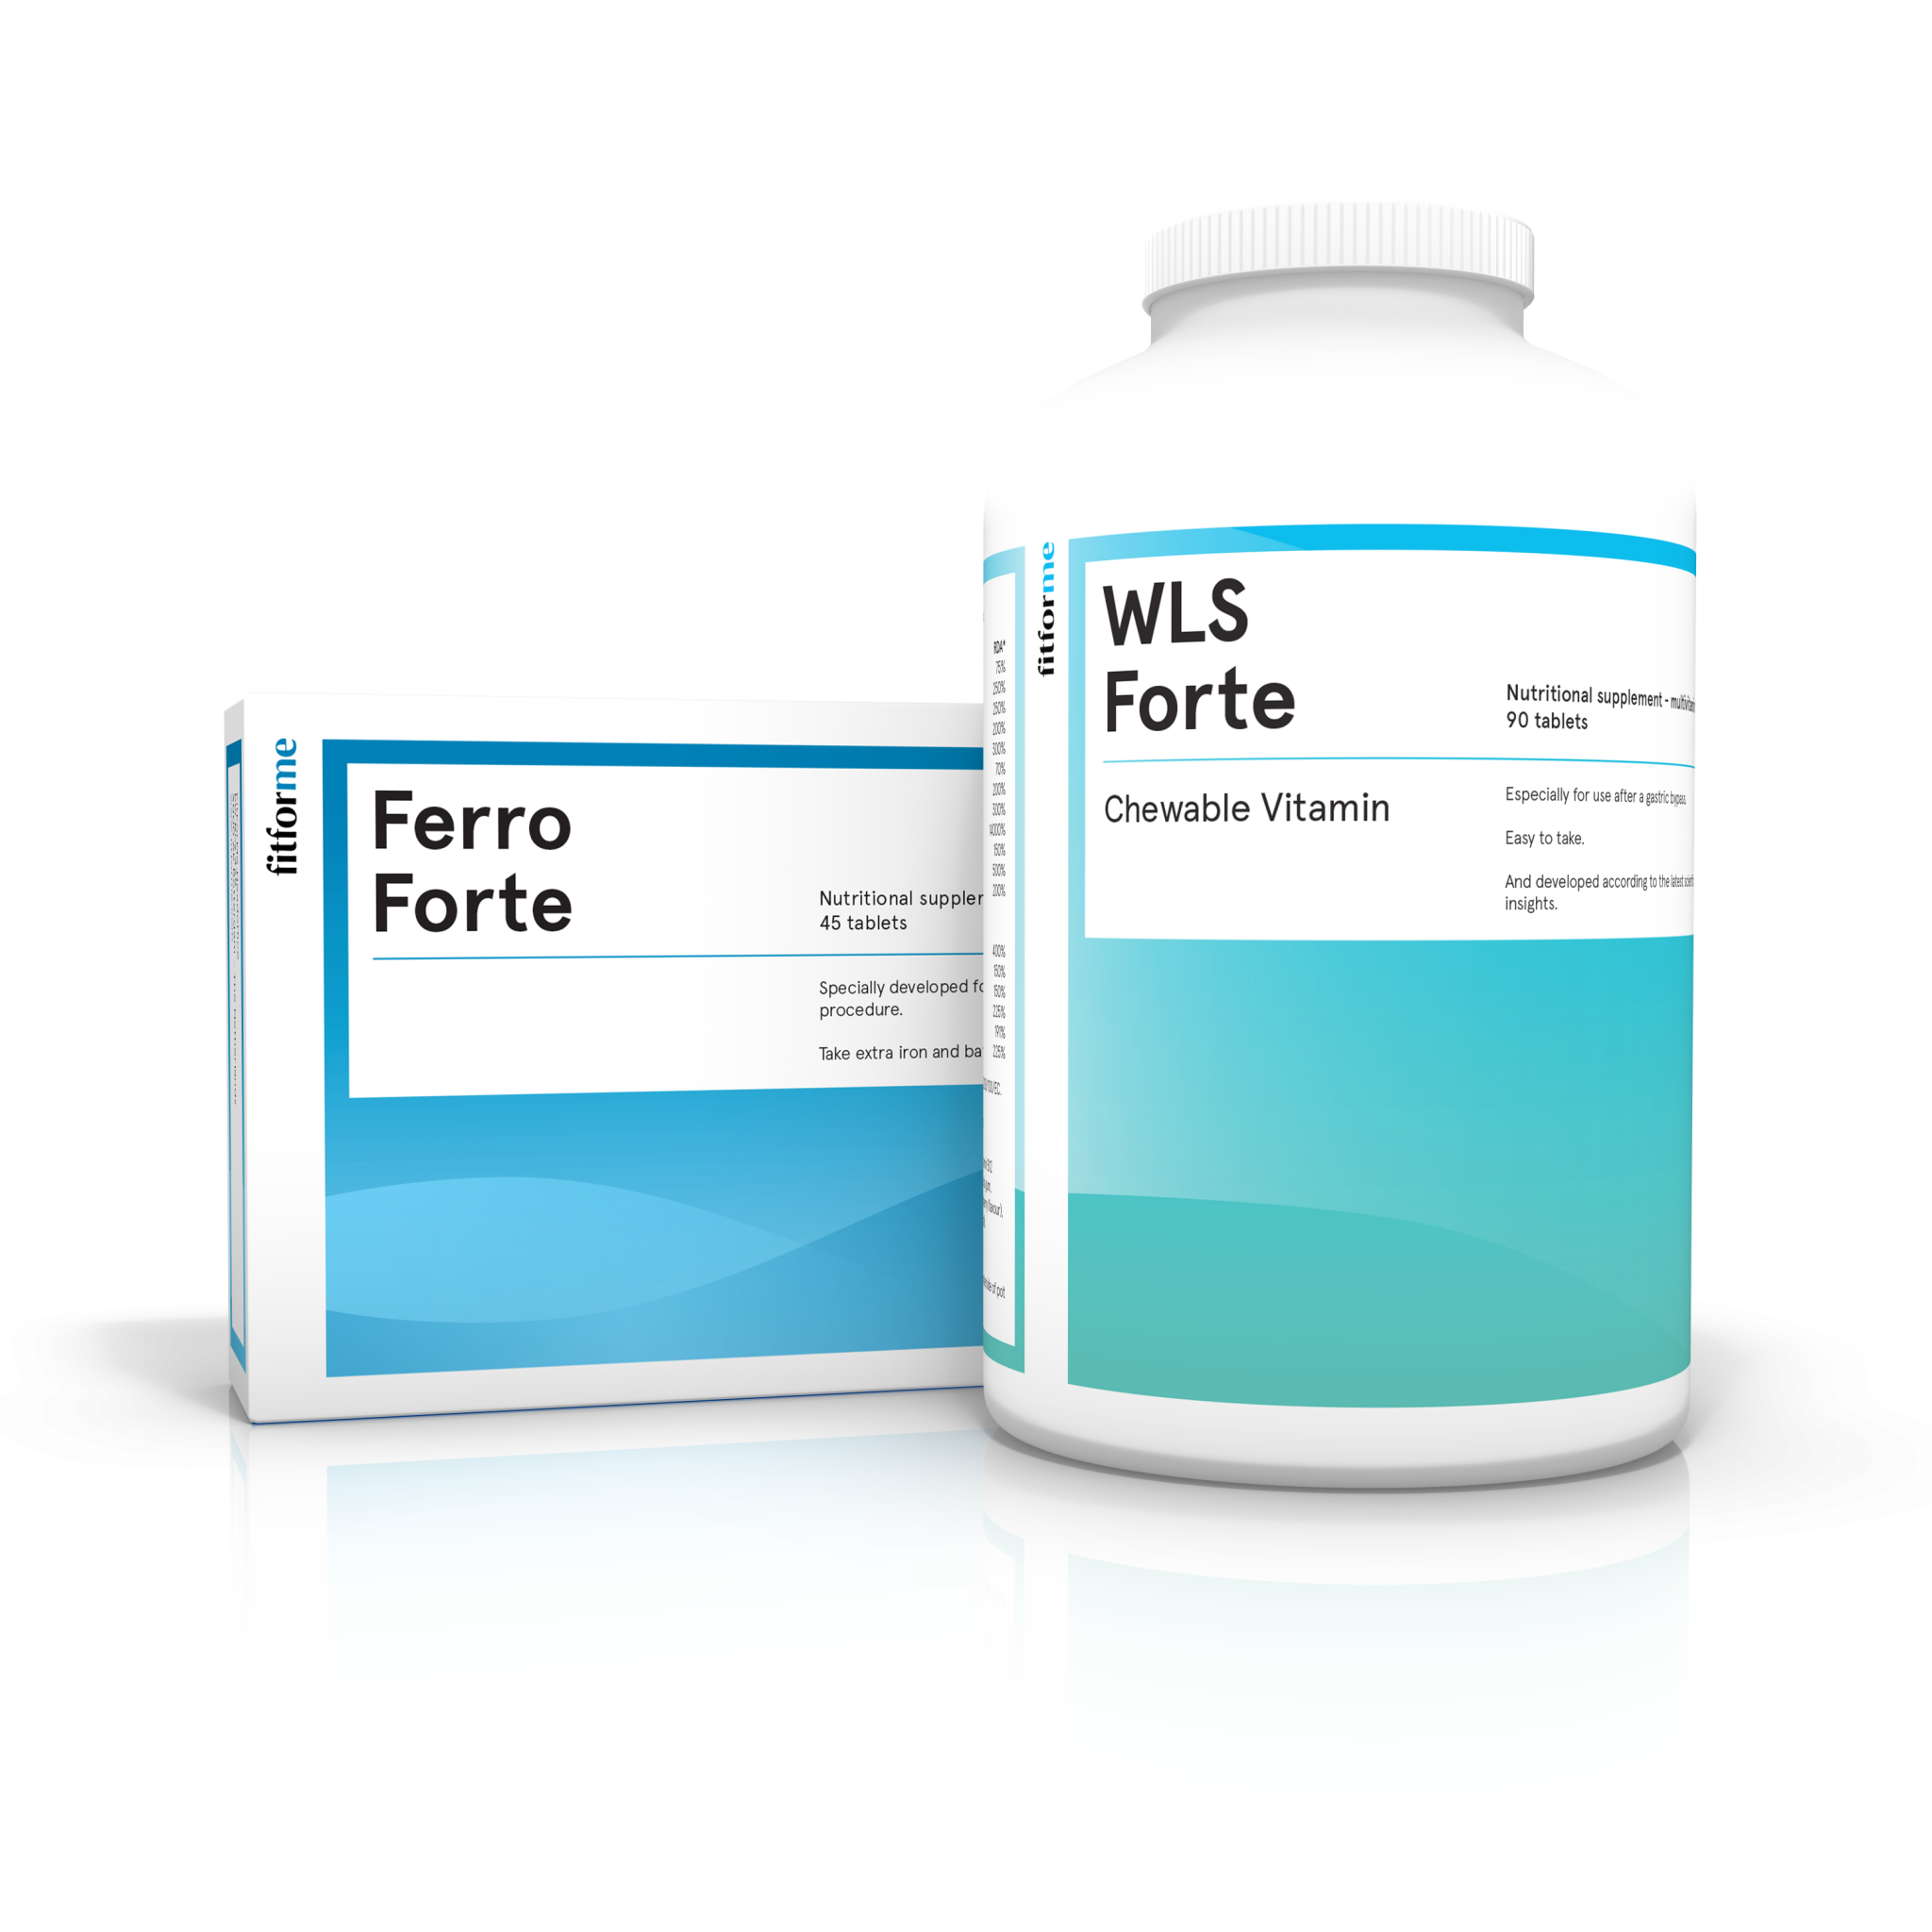 WLS Forte